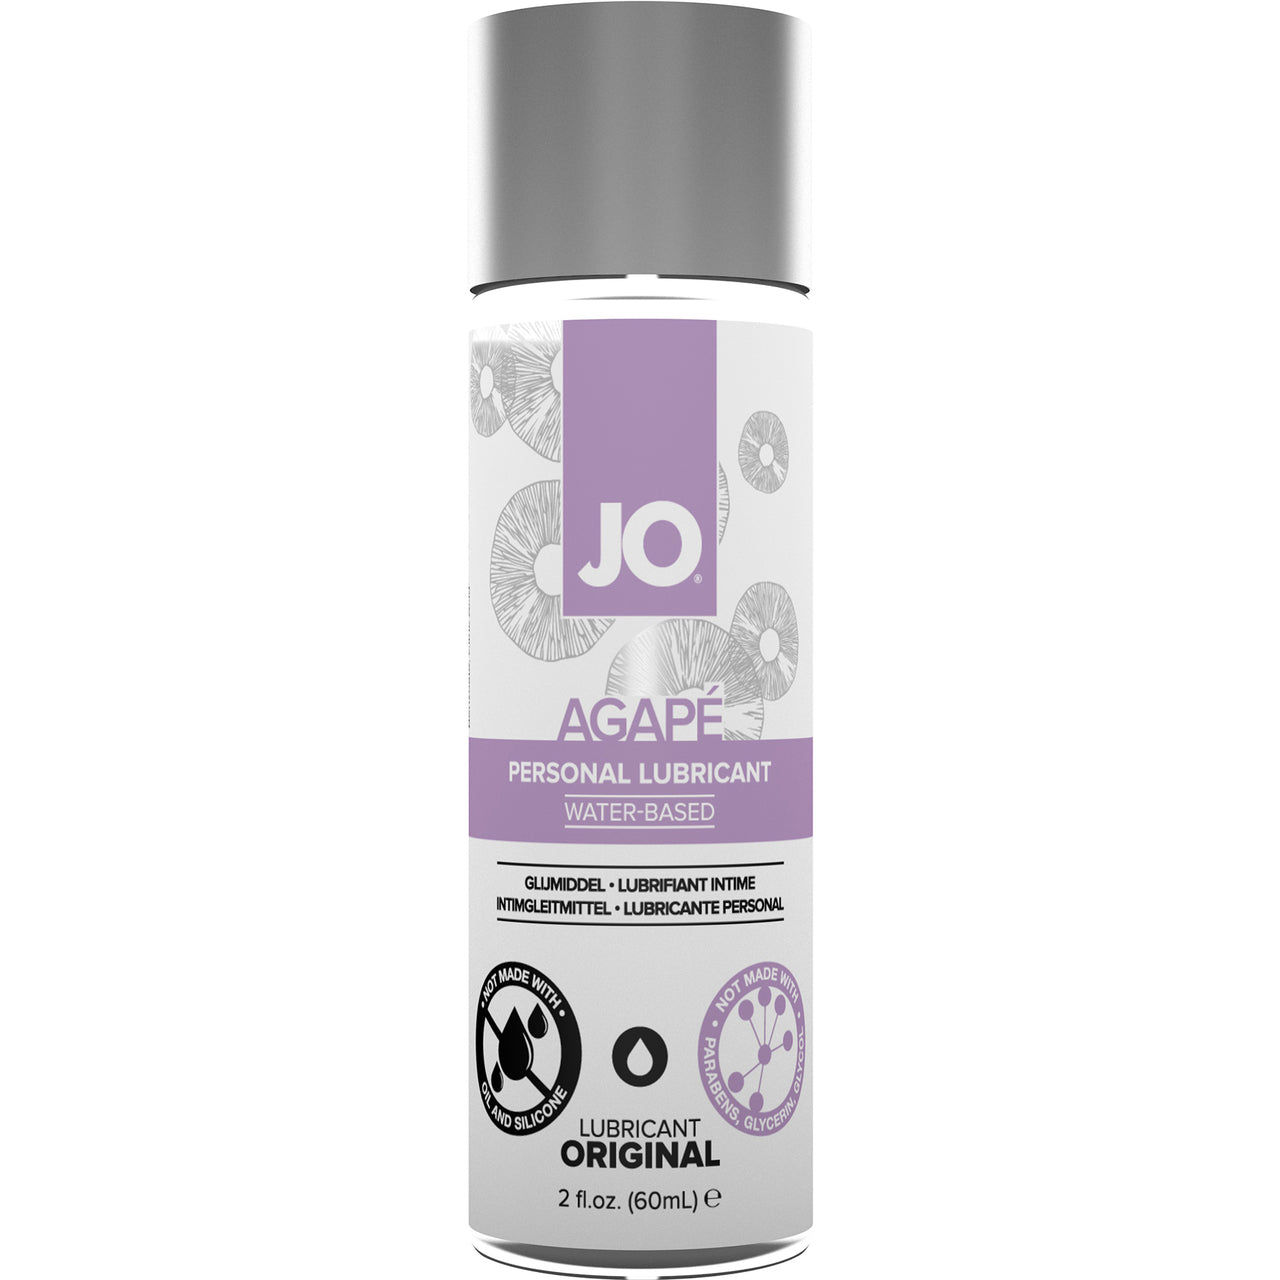 JO Agape Water Based Lubricant 2oz